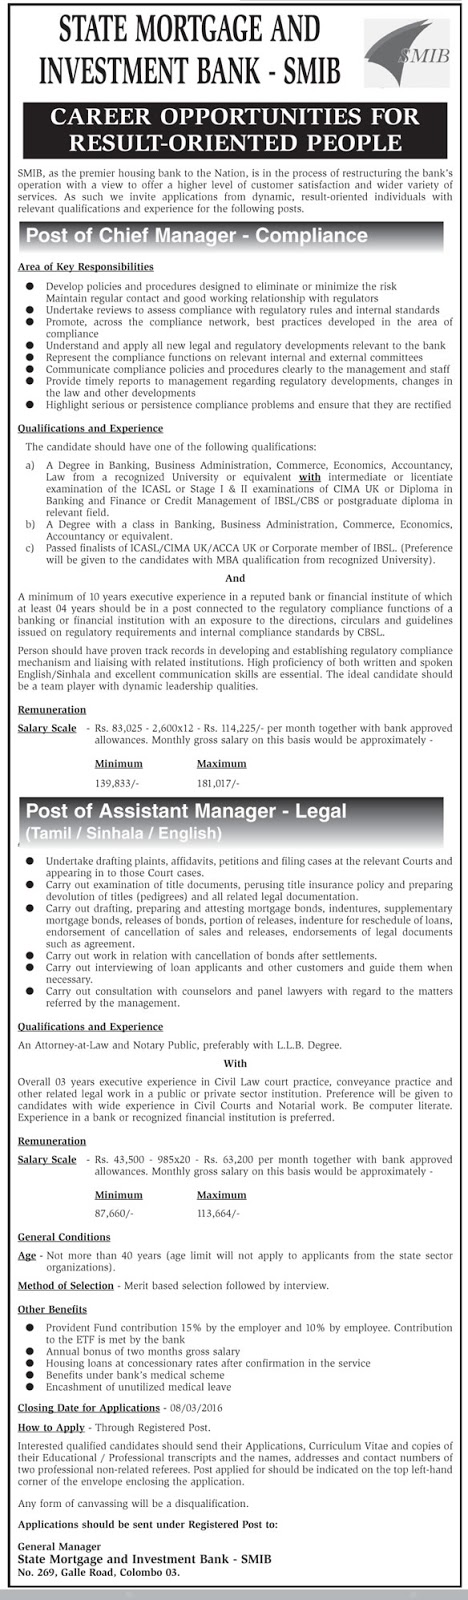 Vacancies - Chief Manager (Compliance), Assistant Manager (Legal – Tamil/sinhala/English) - State Mortgage and Investment Bank –SMIB